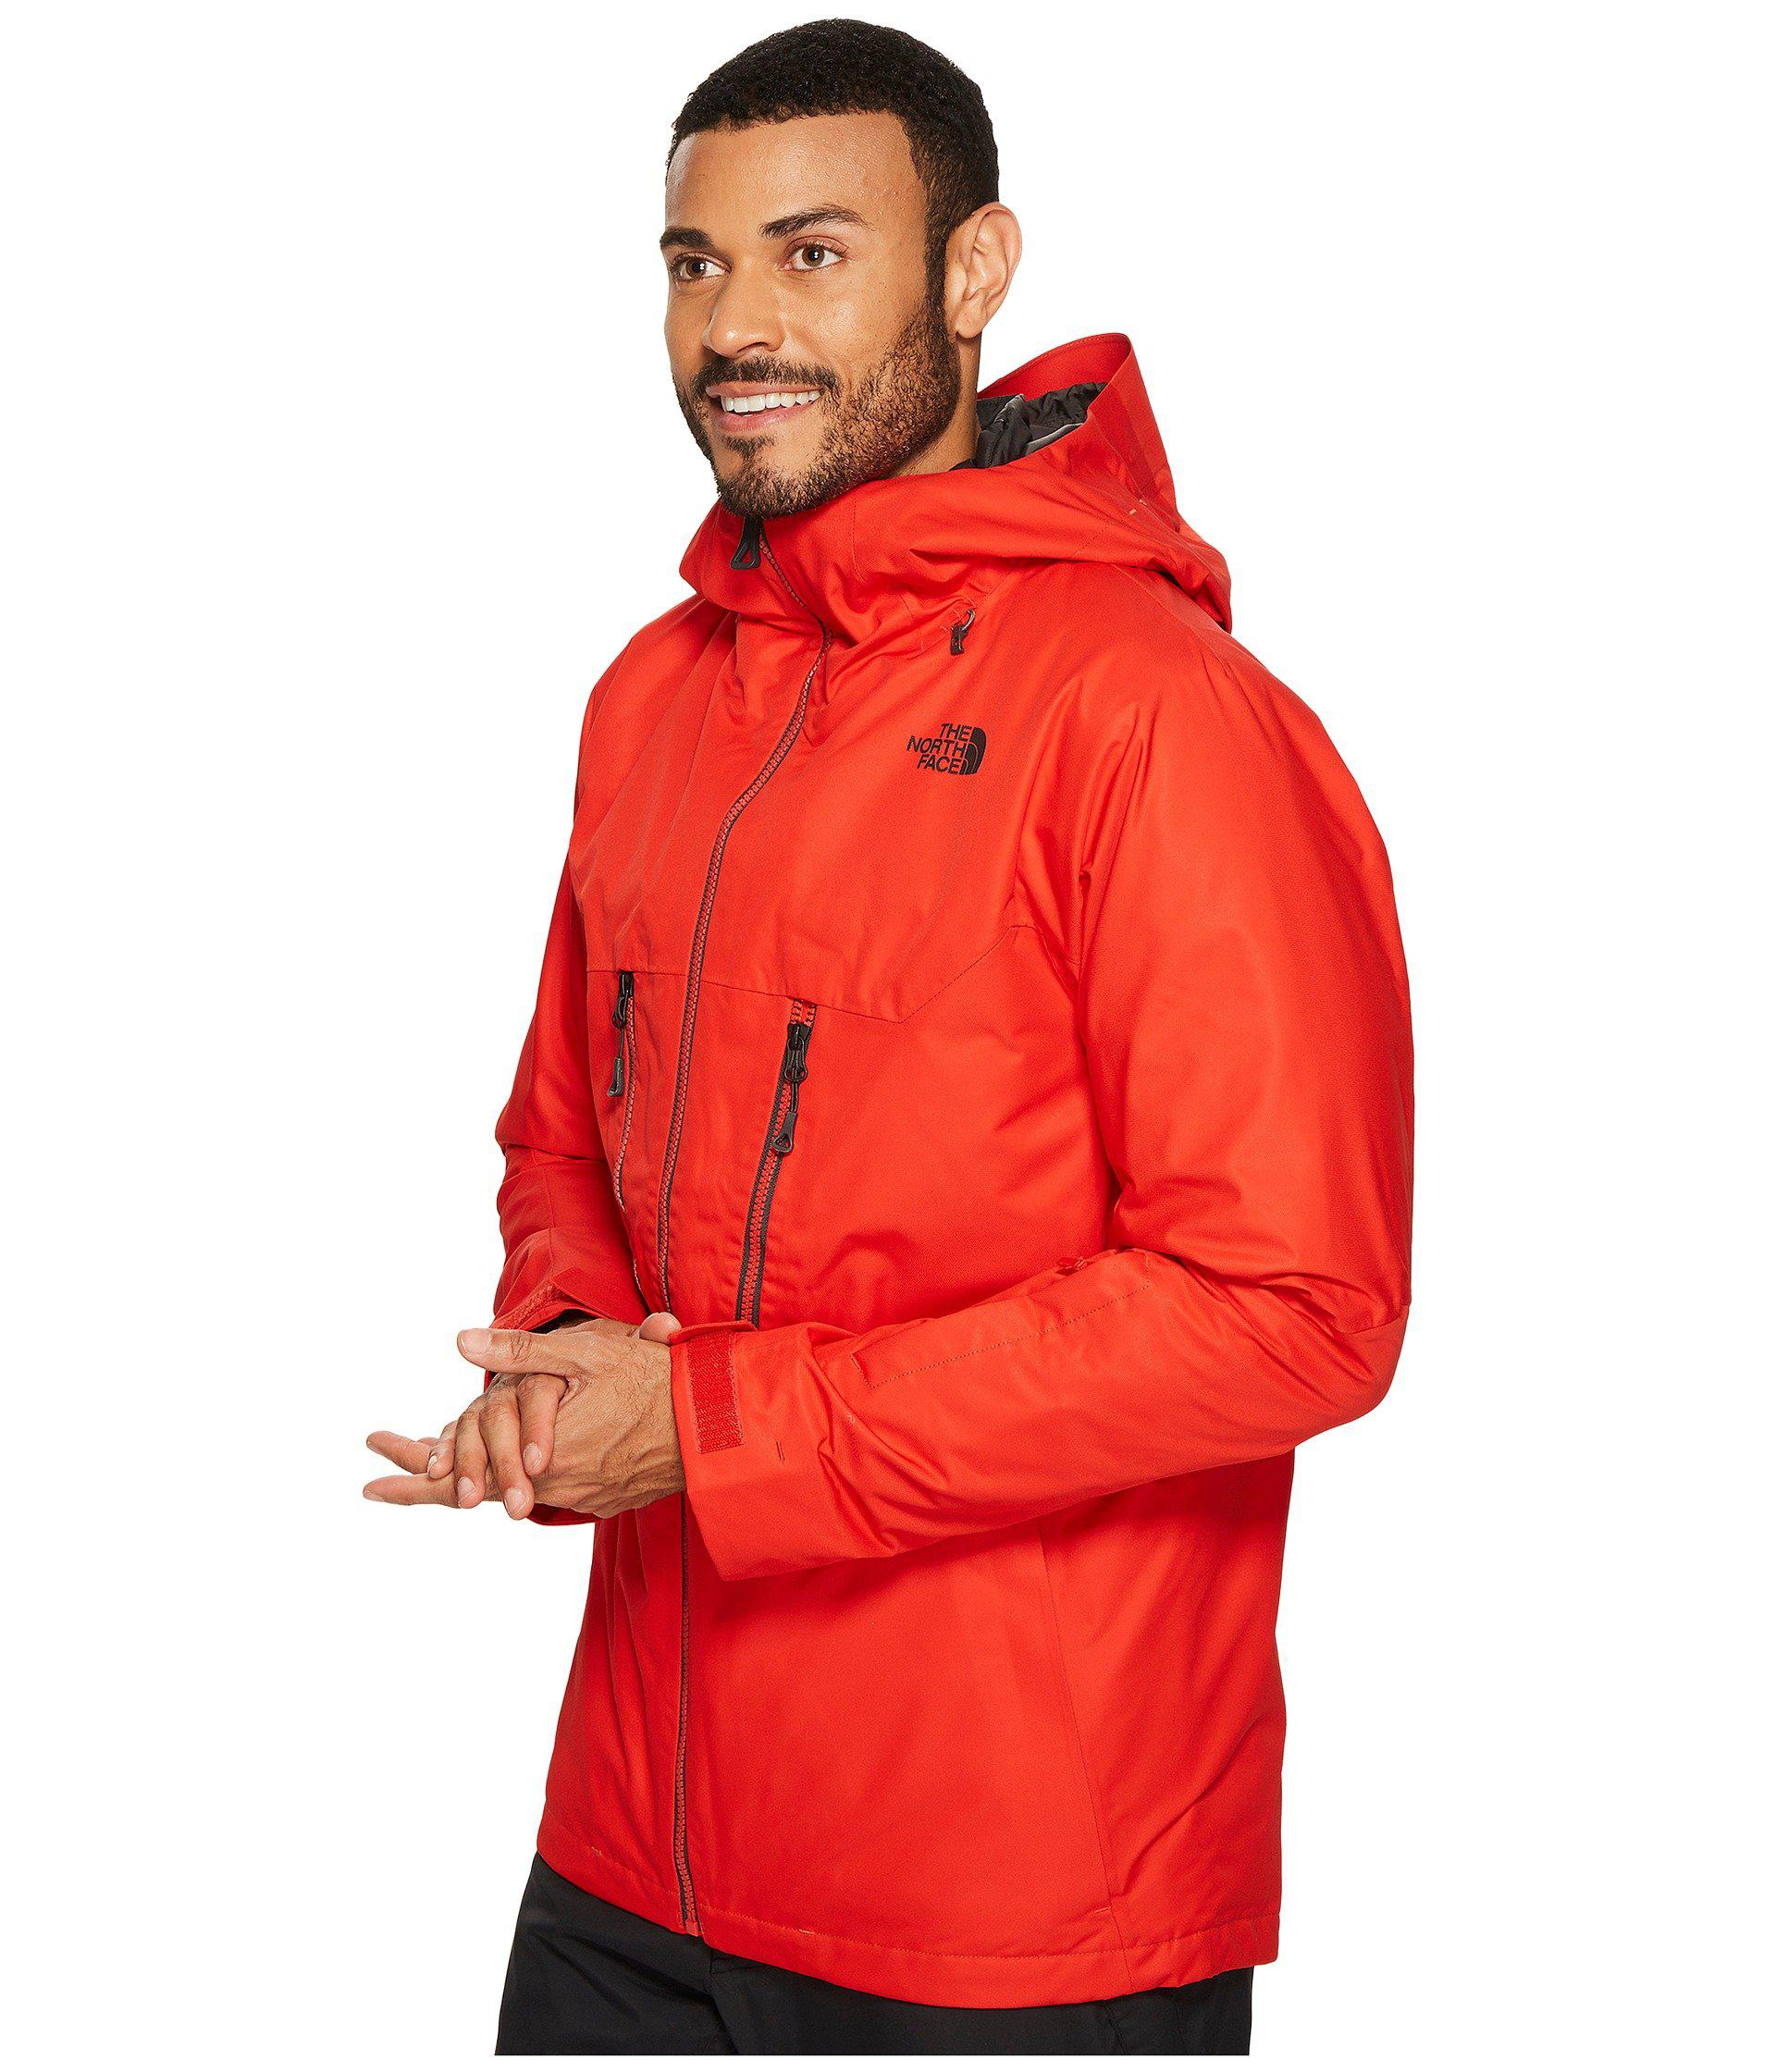 d8a9dbb8fc ... denmark lyst the north face thermoball snow triclimate jacket in red  for men save 28.688524590163937 27c13